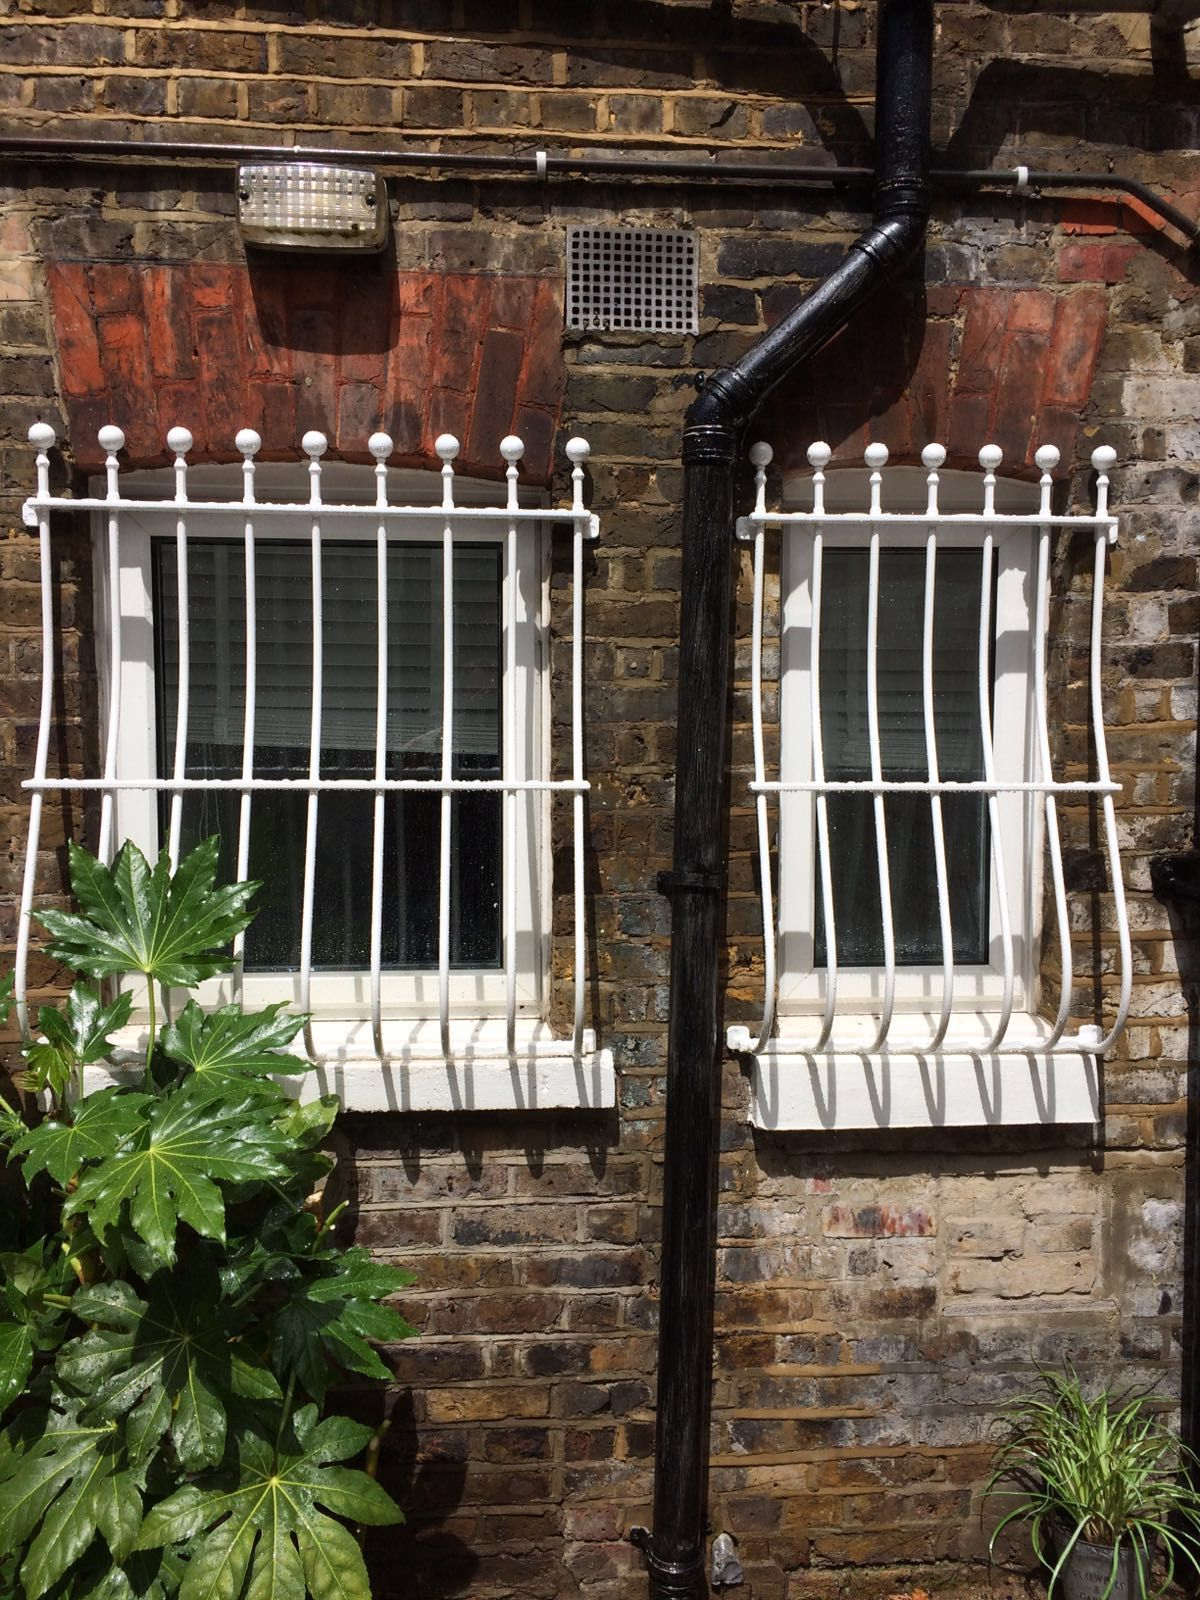 Roselle NJ Custom Window Bars bars Pinterest Window bars